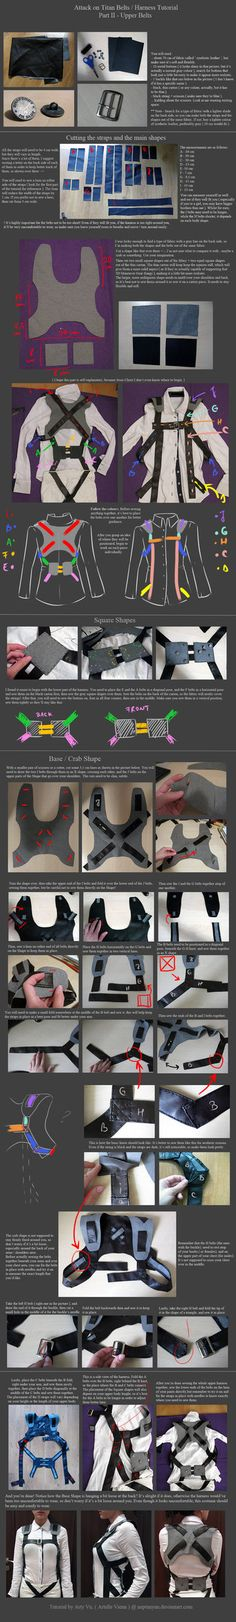 Attack on Titan Belts / Harness tutorial - Part 2 by neptunyan